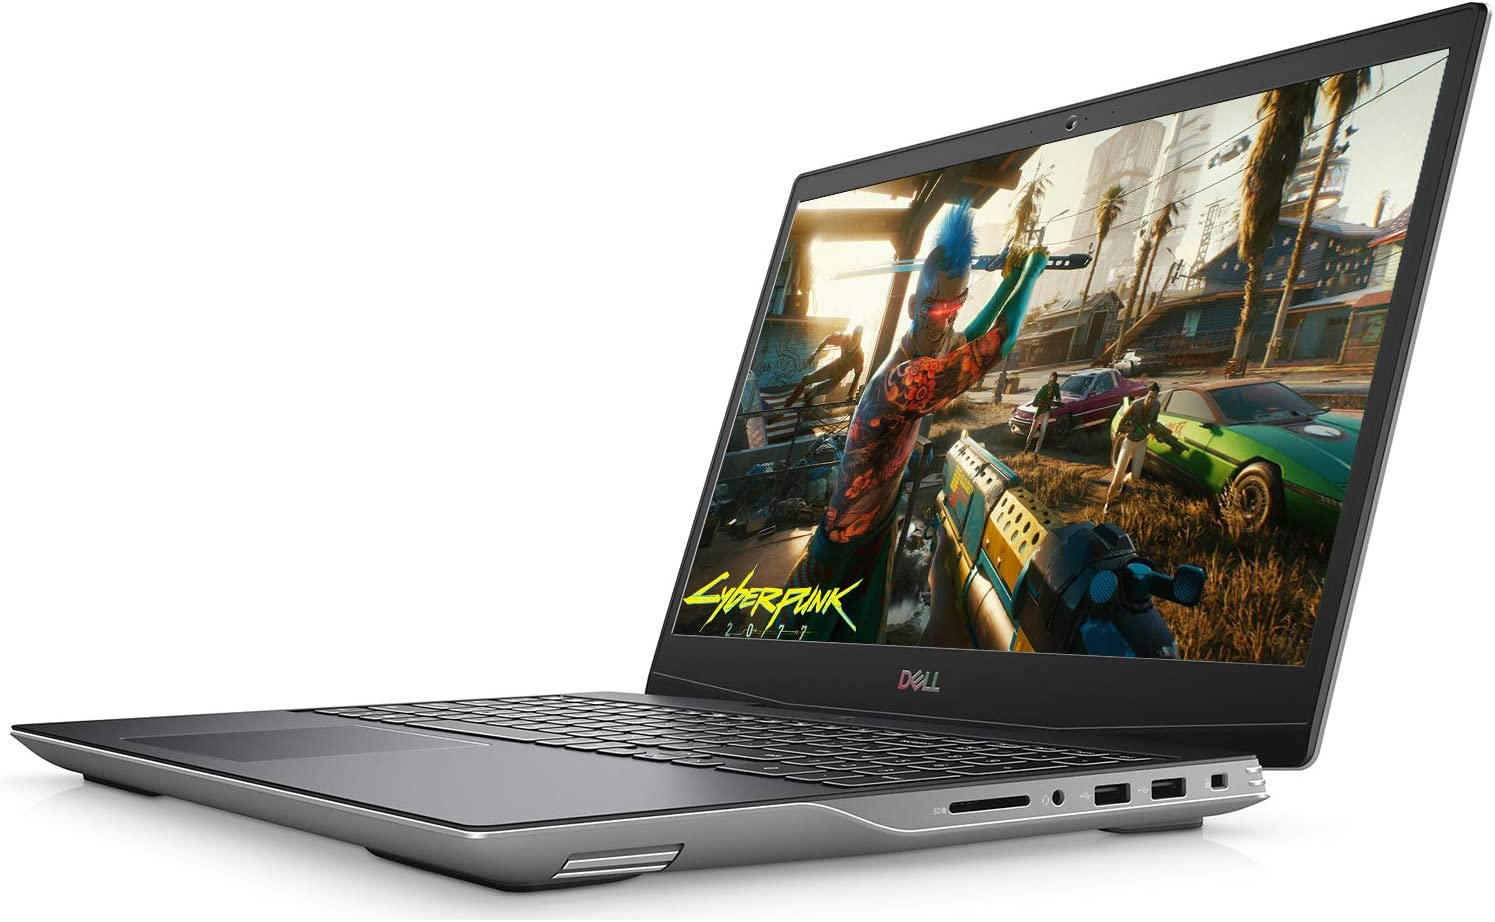 Dell G5 Gaming Laptop (2021 Latest Model), 15.6